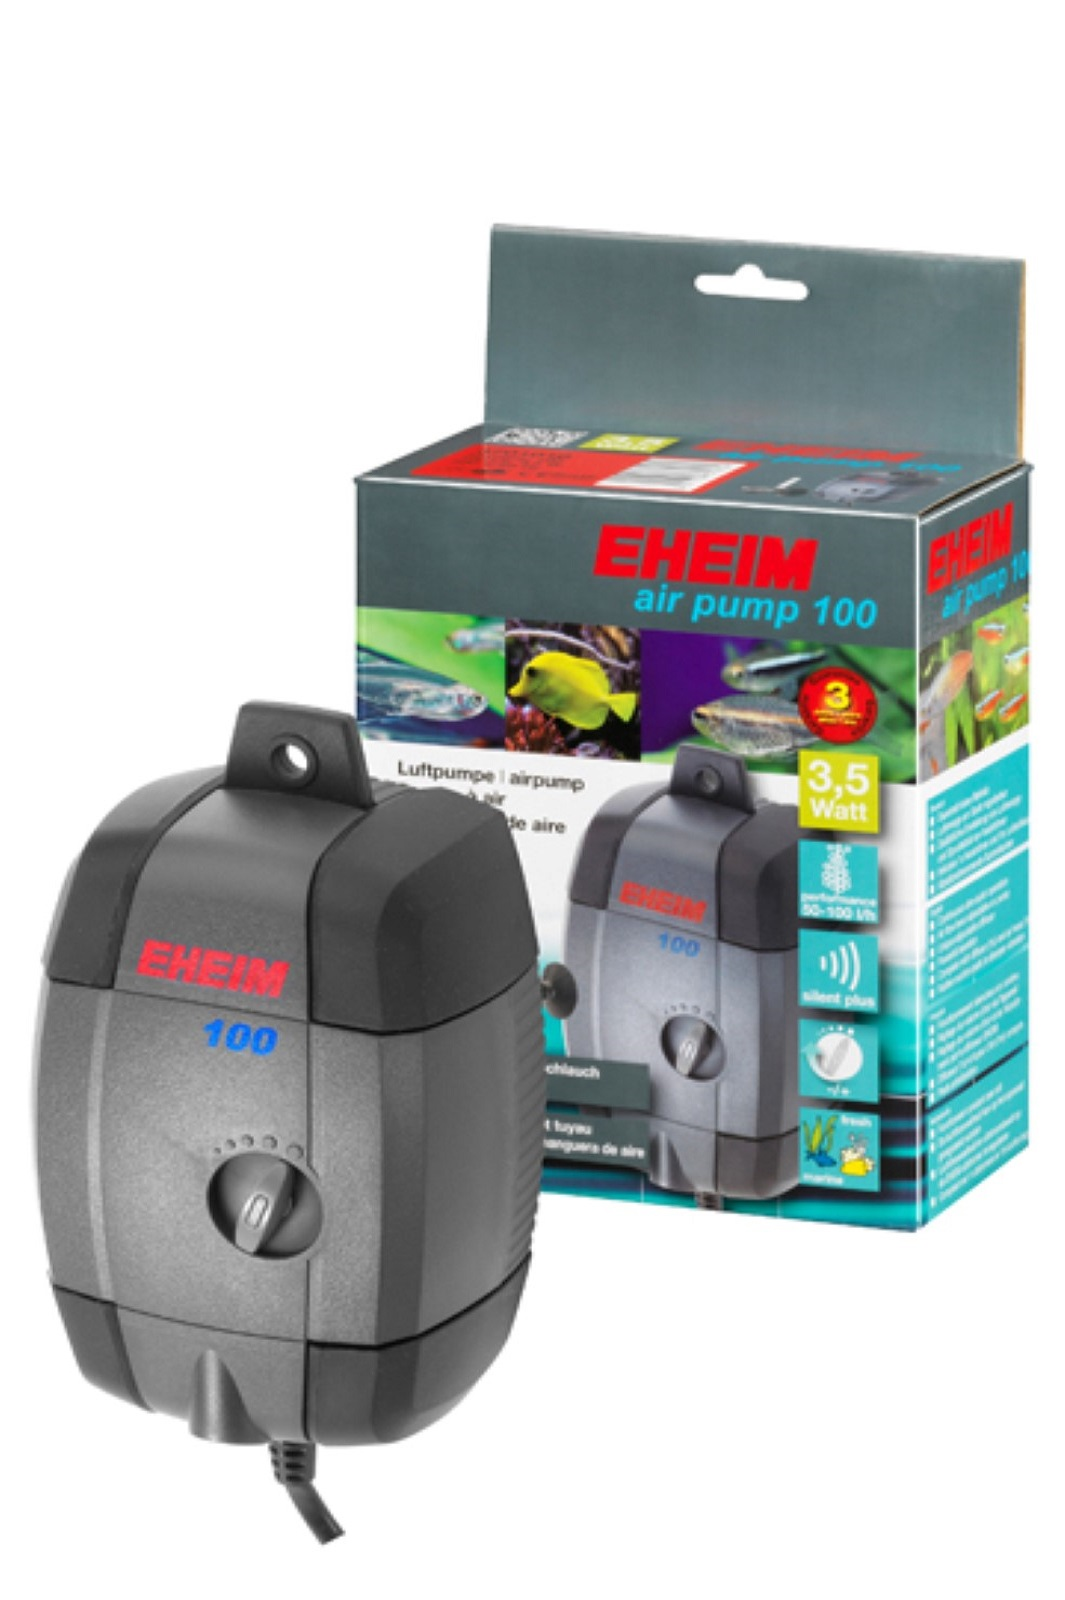 Eheim  air pump 100 Pumpe Luftpumpe Aquarium